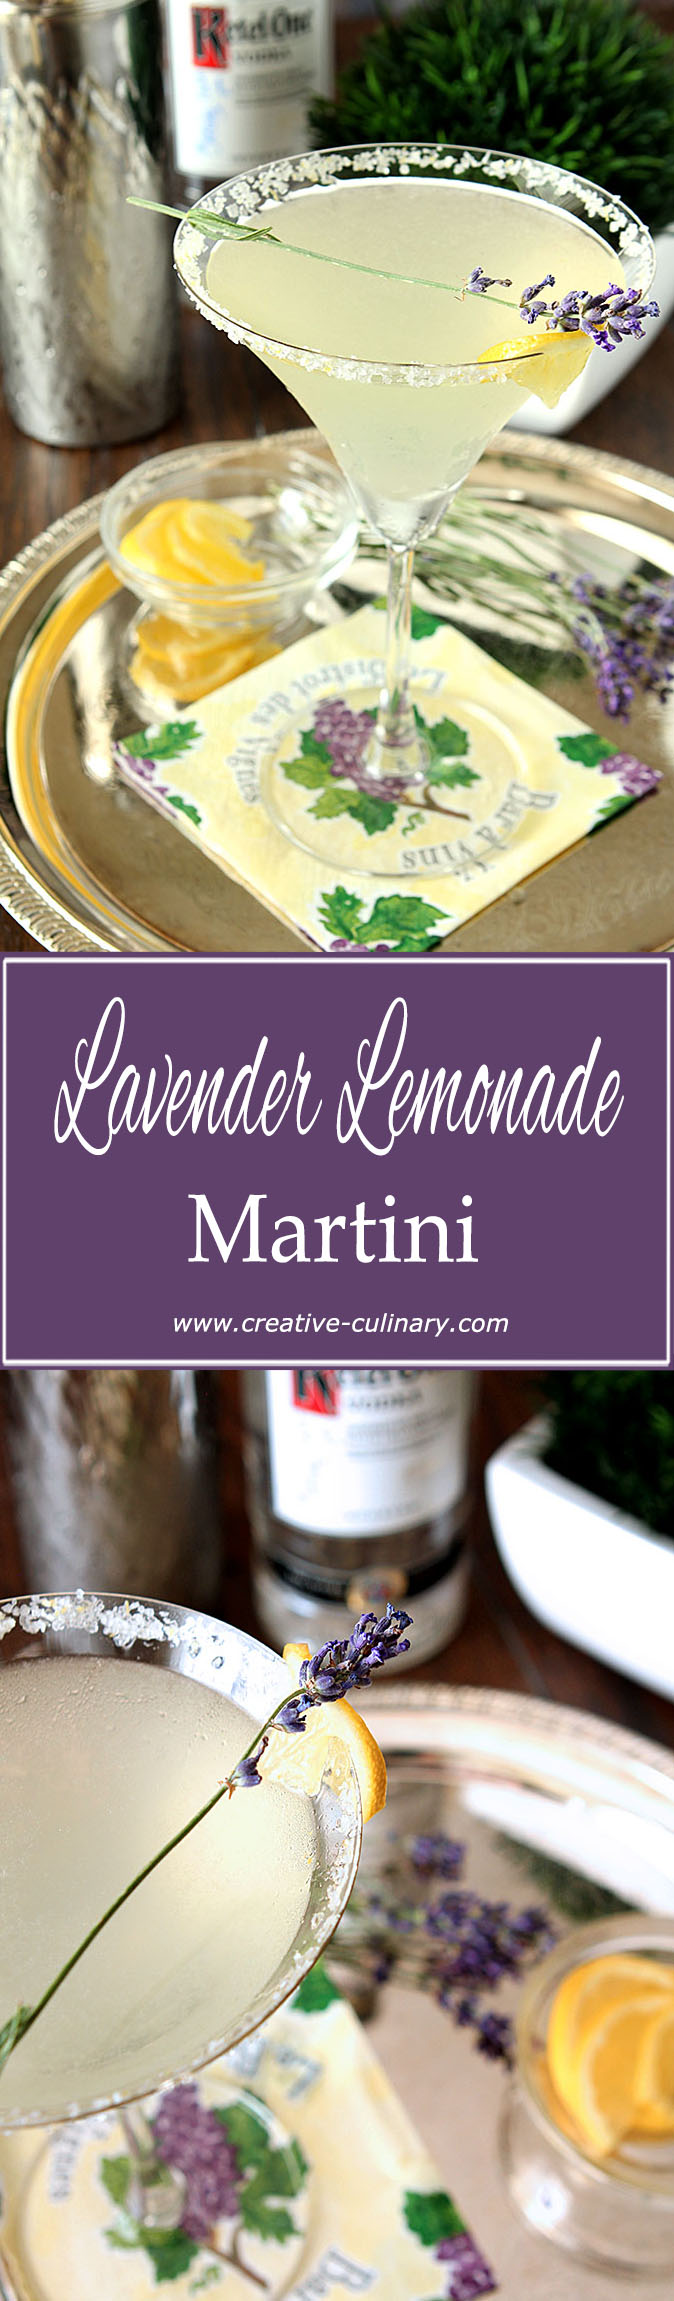 Light, Fresh and Lemony with just a hint of lavender, this Lavender Lemonade Martini is a fantastic summer libation.